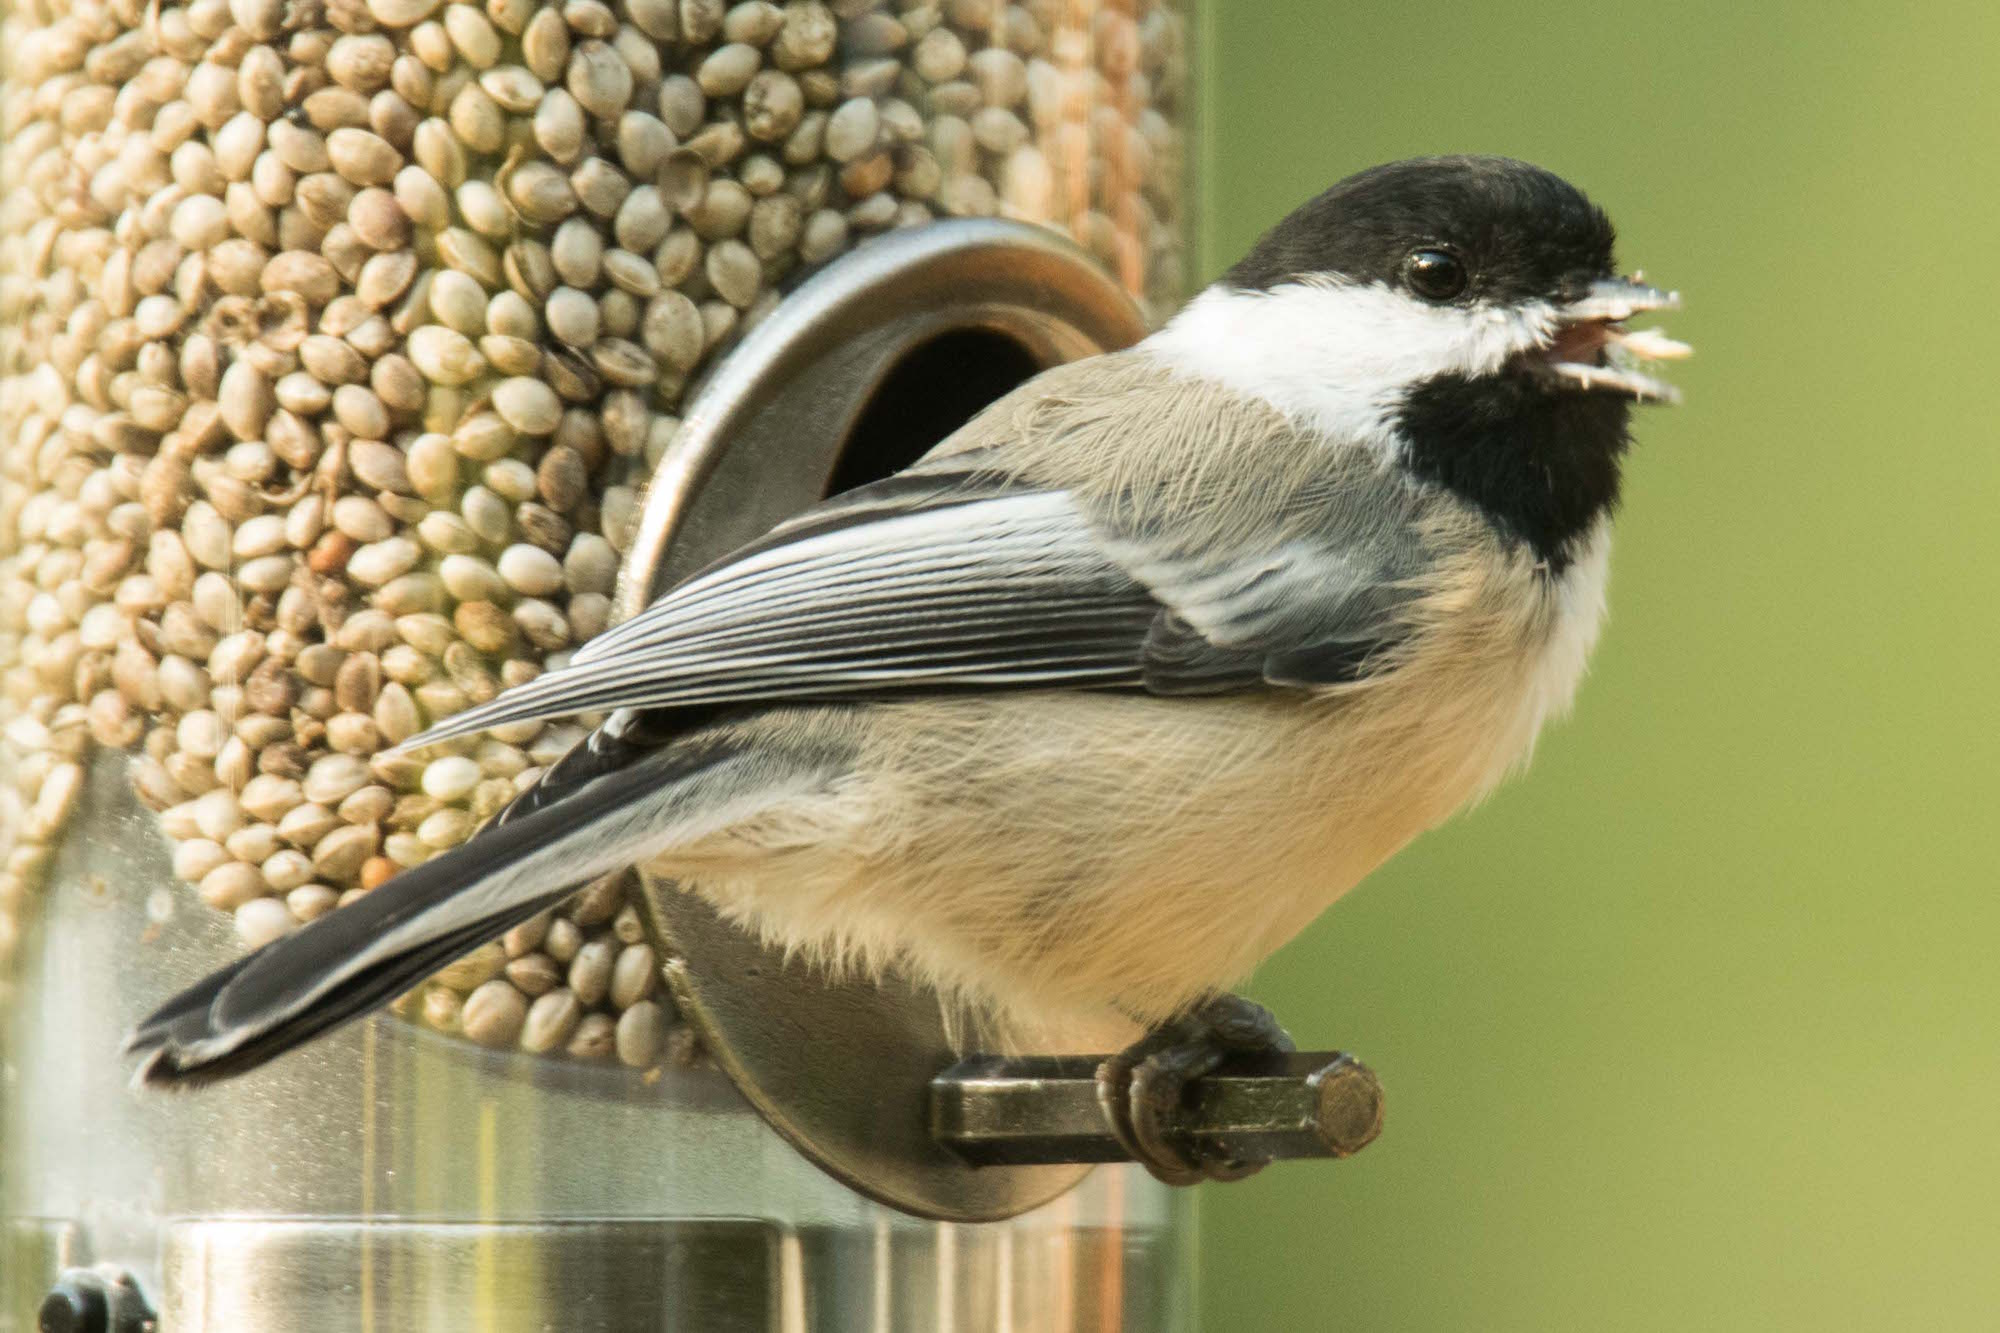 A Black-capped Chickadee eats a hemp seed from a feeder. Photo by Carrol  Henderson